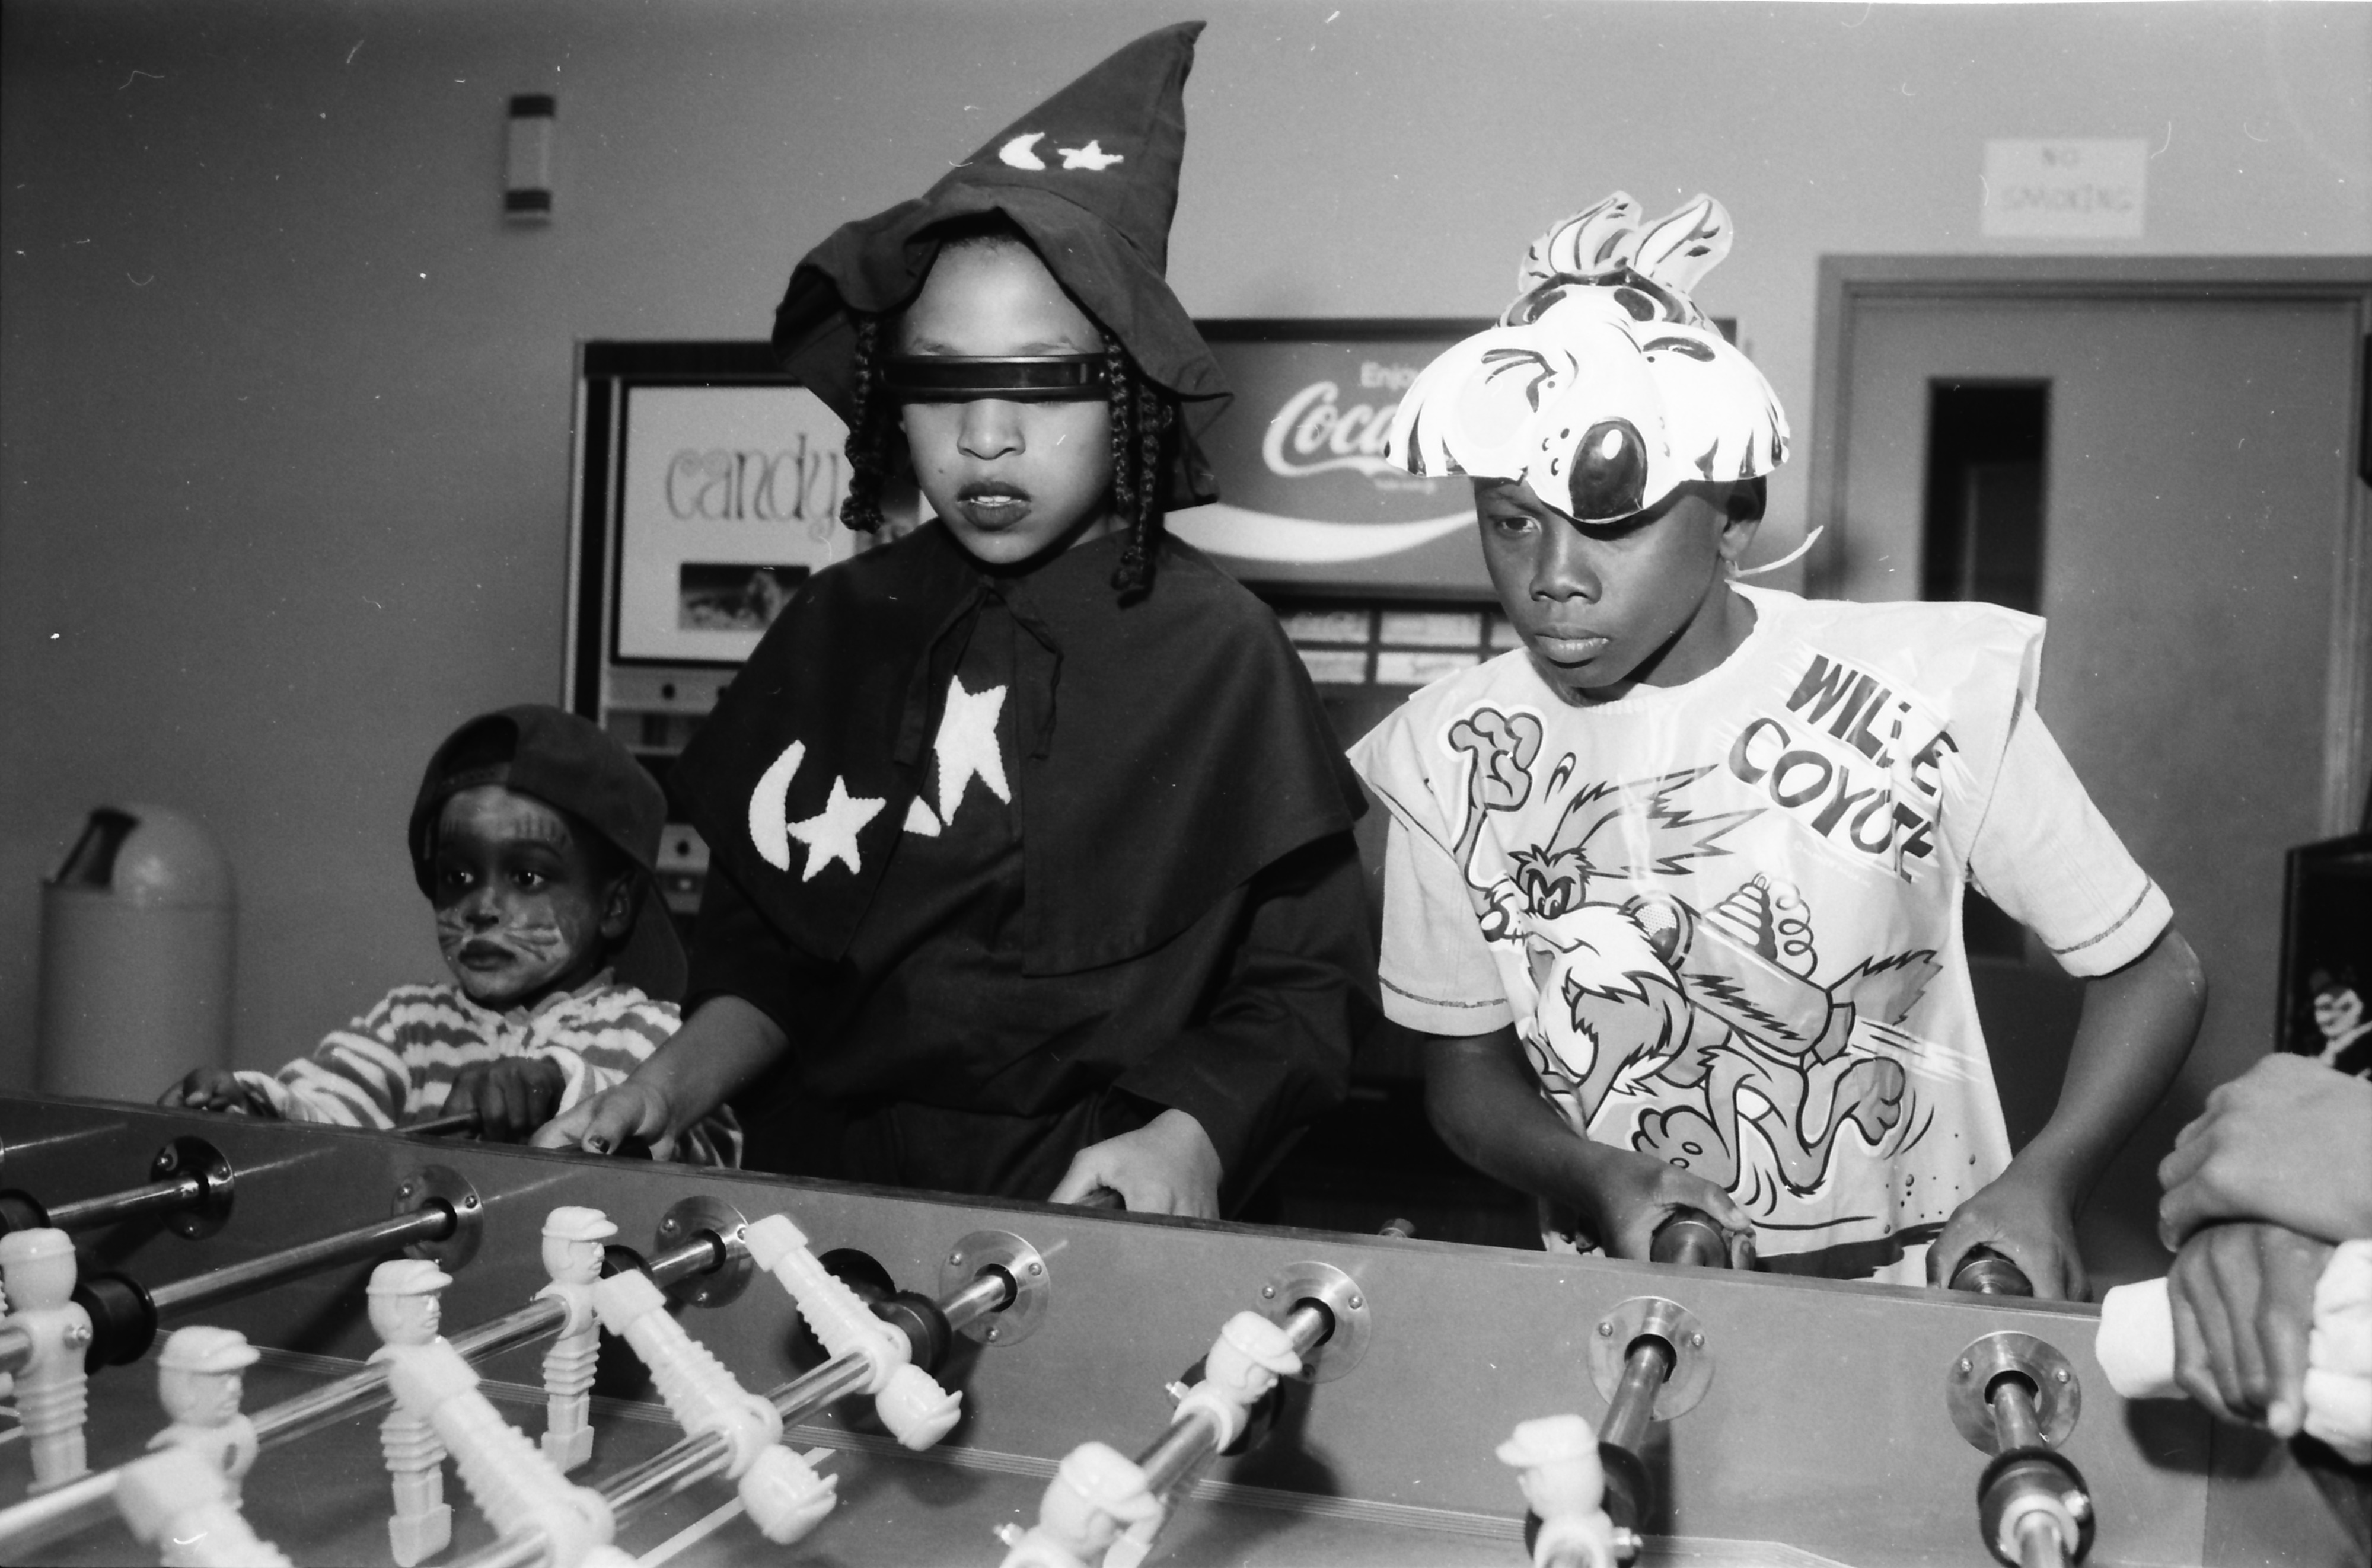 Foosball at Halloween Party at Parkridge Community Center, October 1983 image